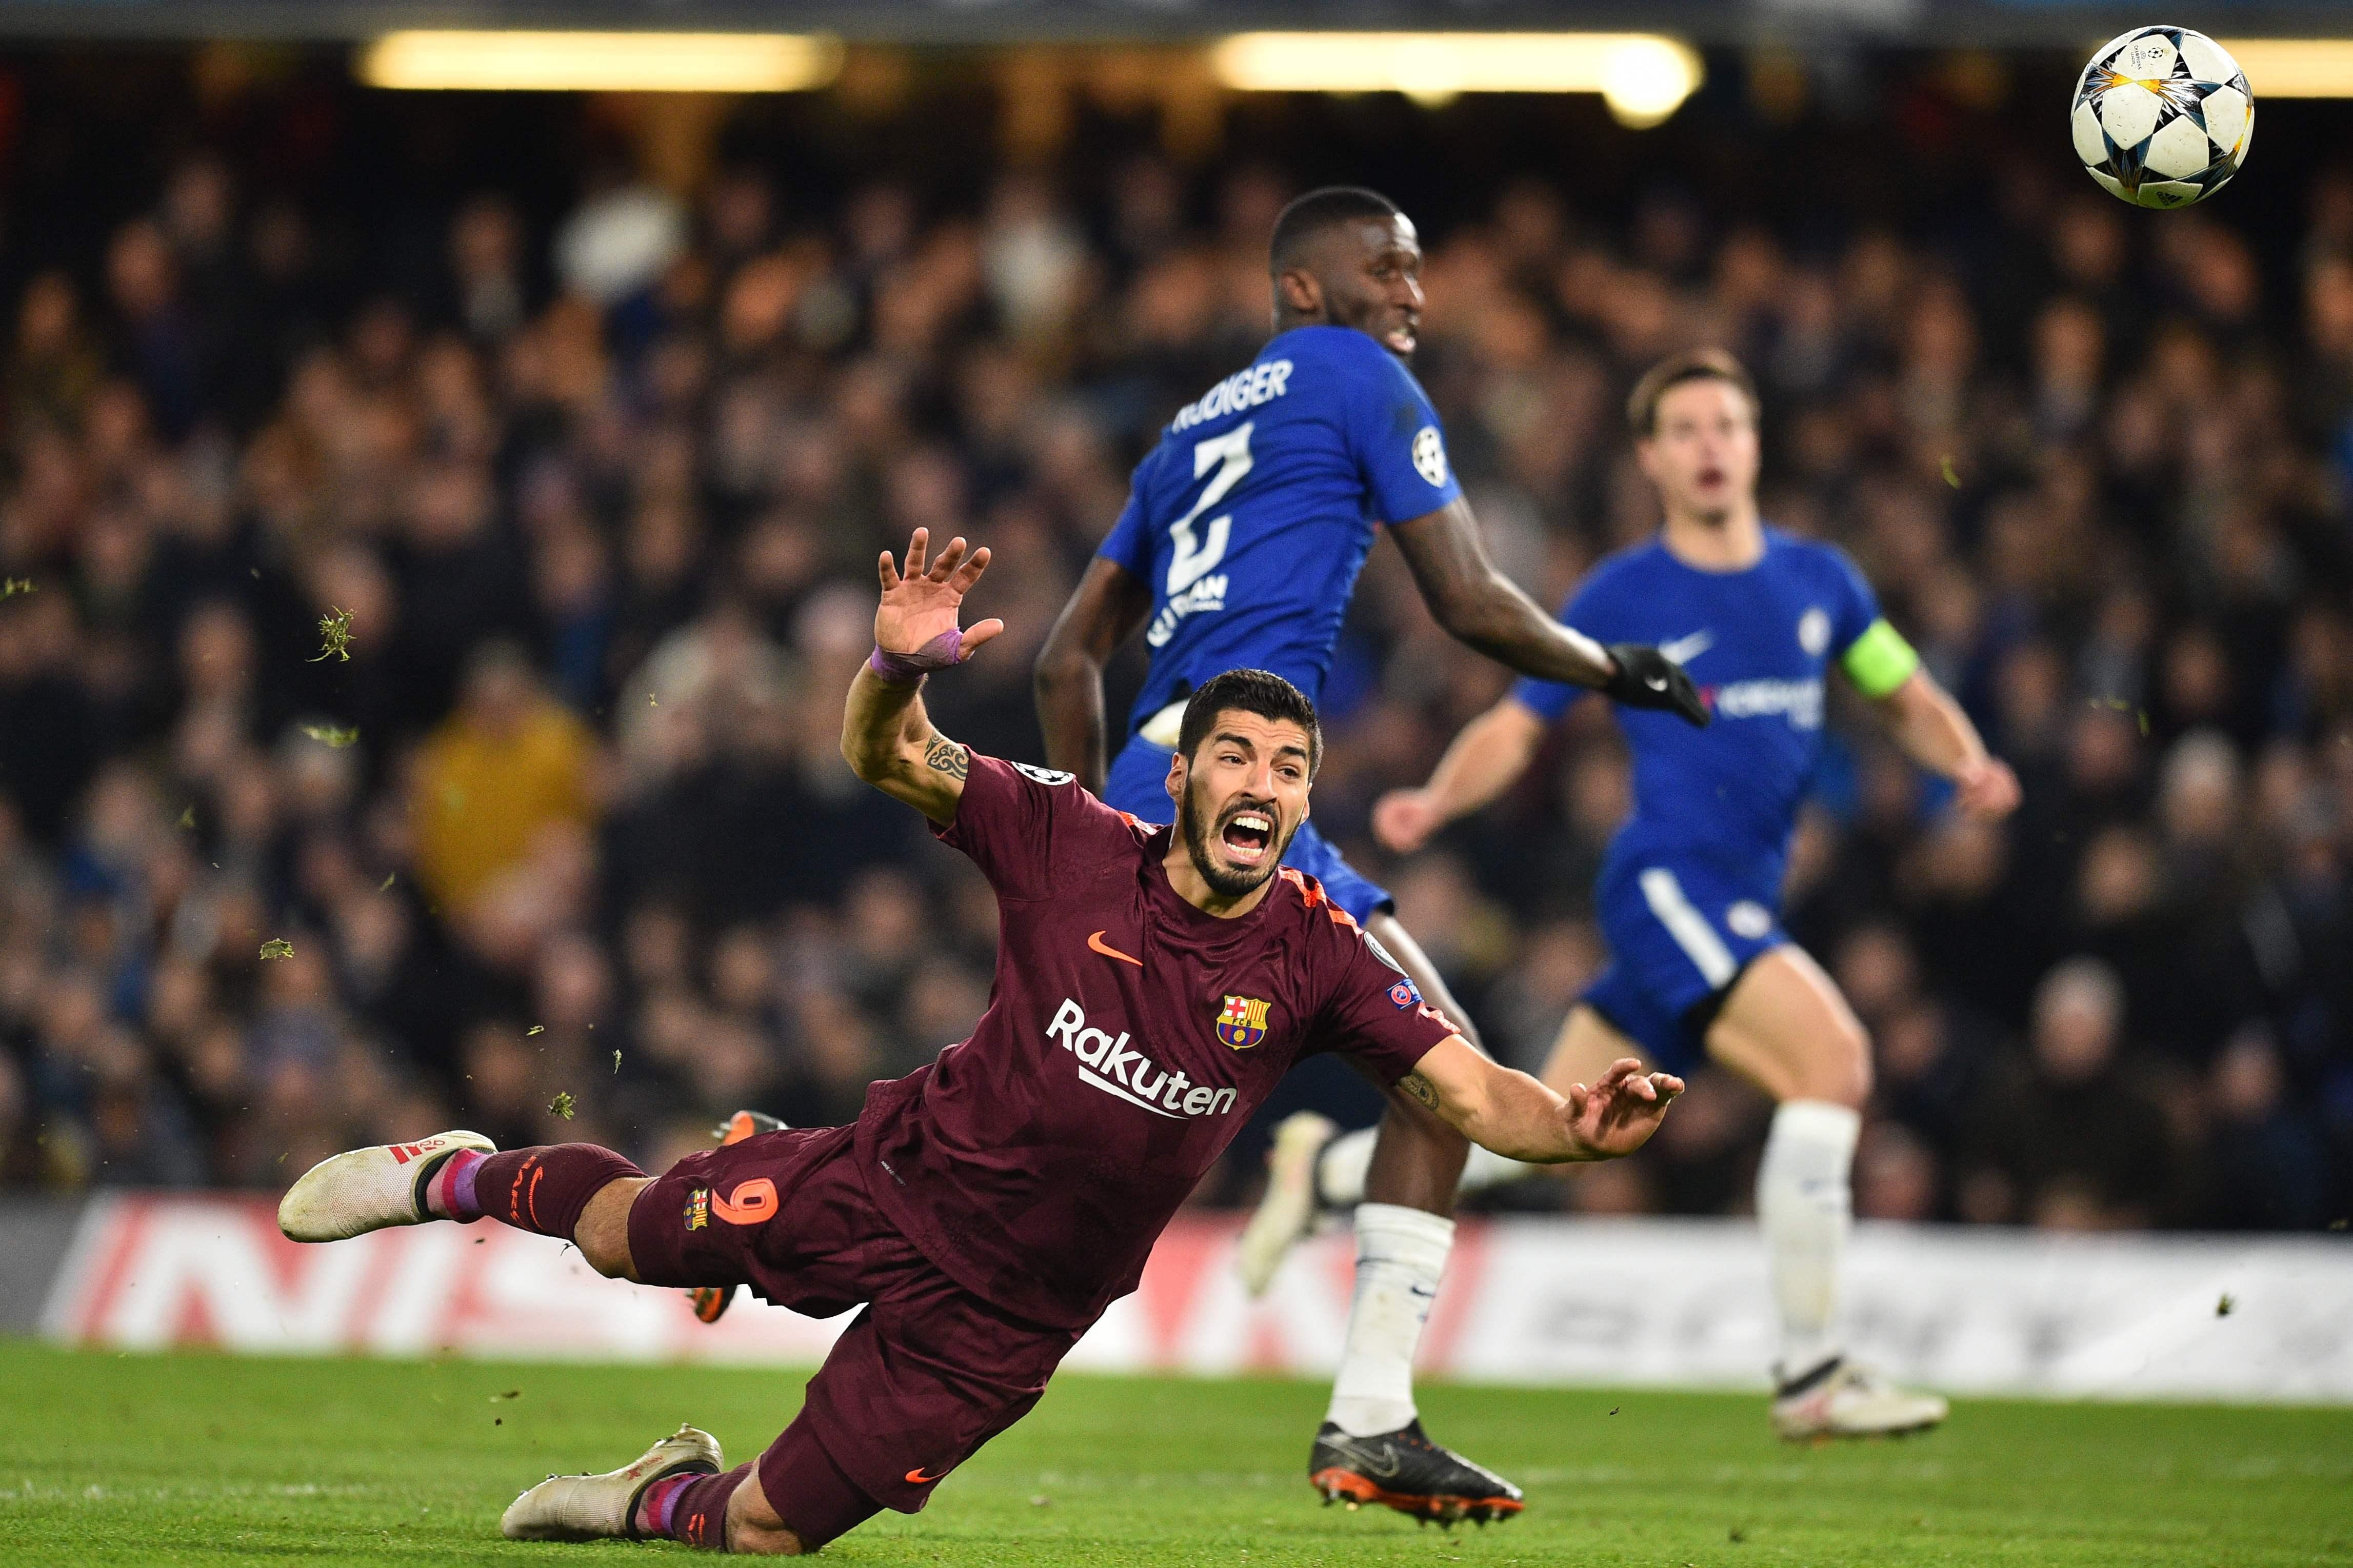 Rudiger challenges the striker from behind